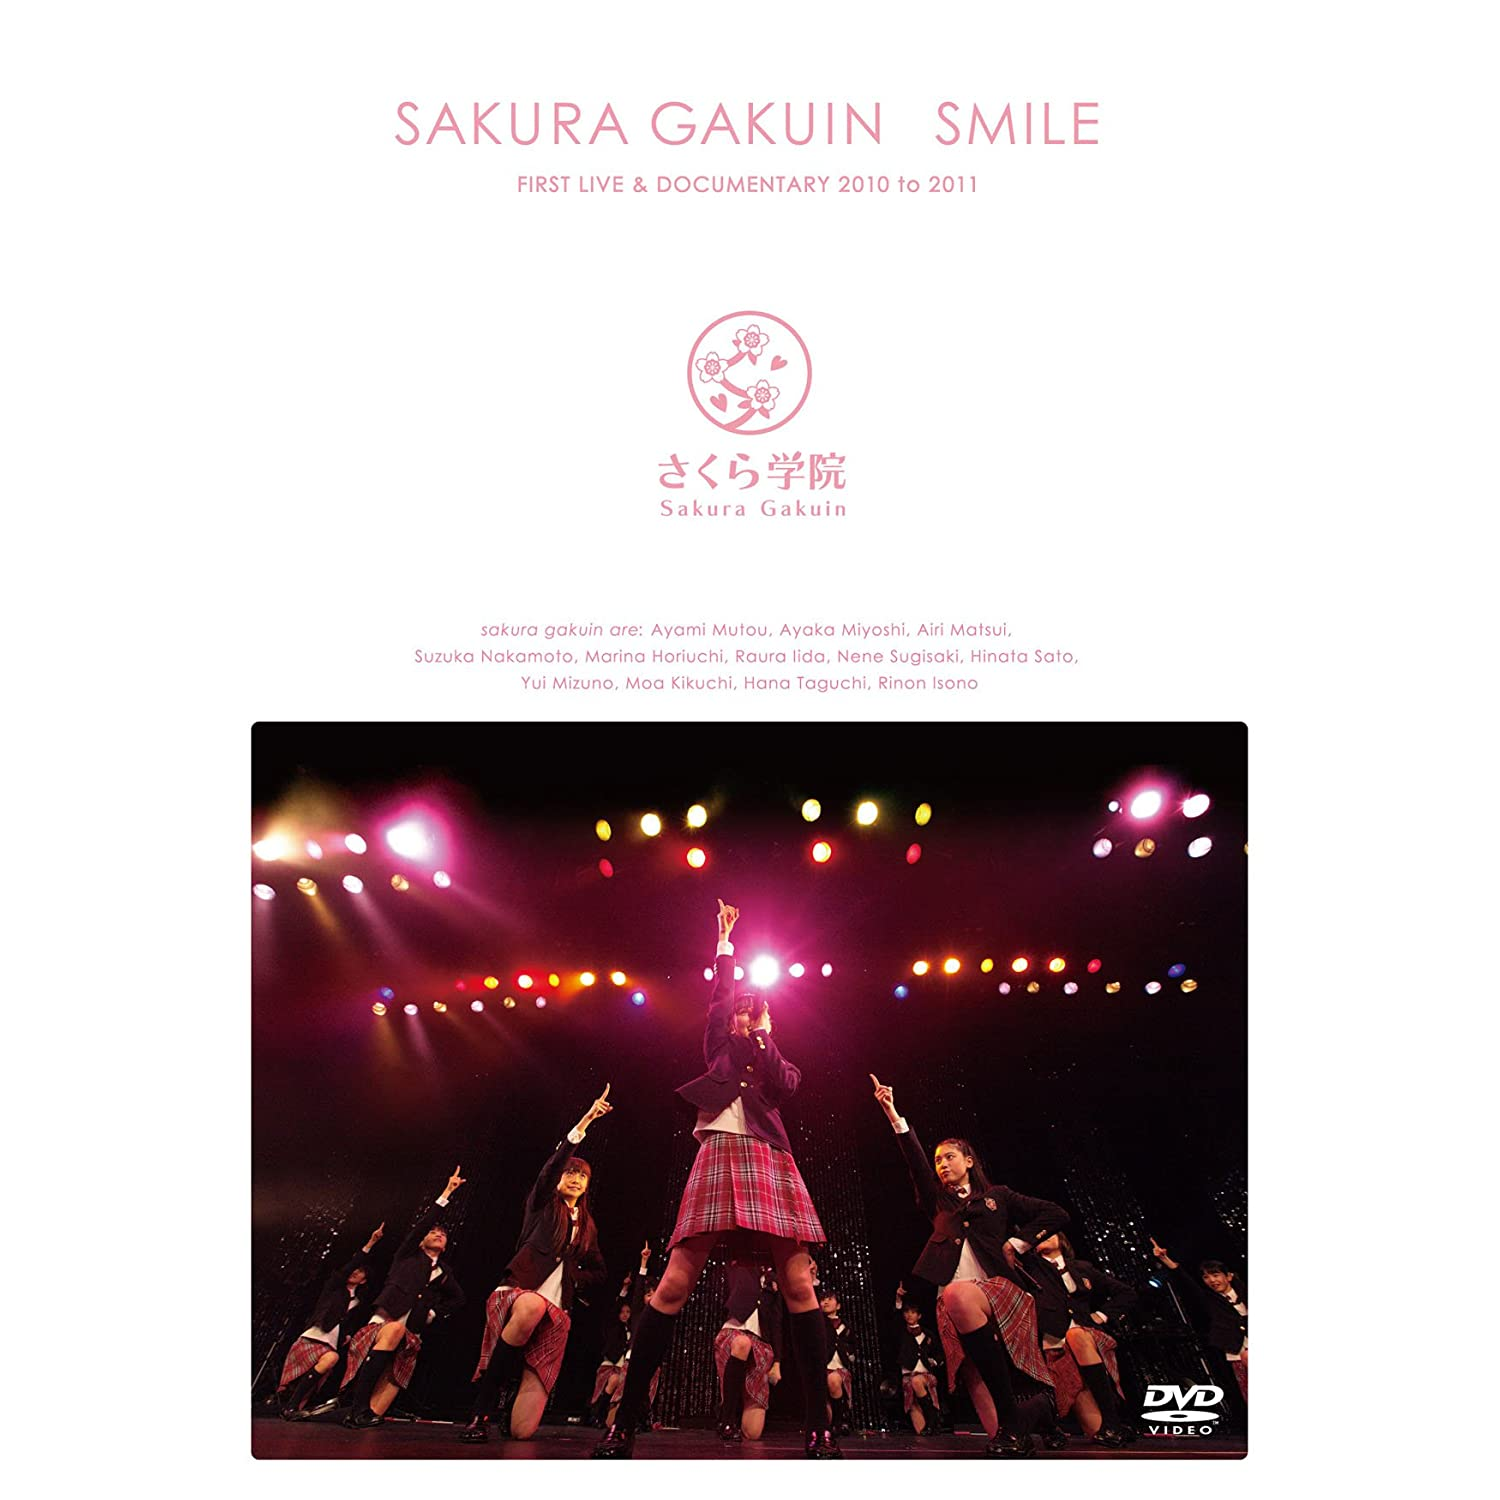 Sakura Gakuin さくら学院 – Sakura Gakuin FIRST LIVE & DOCUMENTARY 2010 to 2011 ~smile~